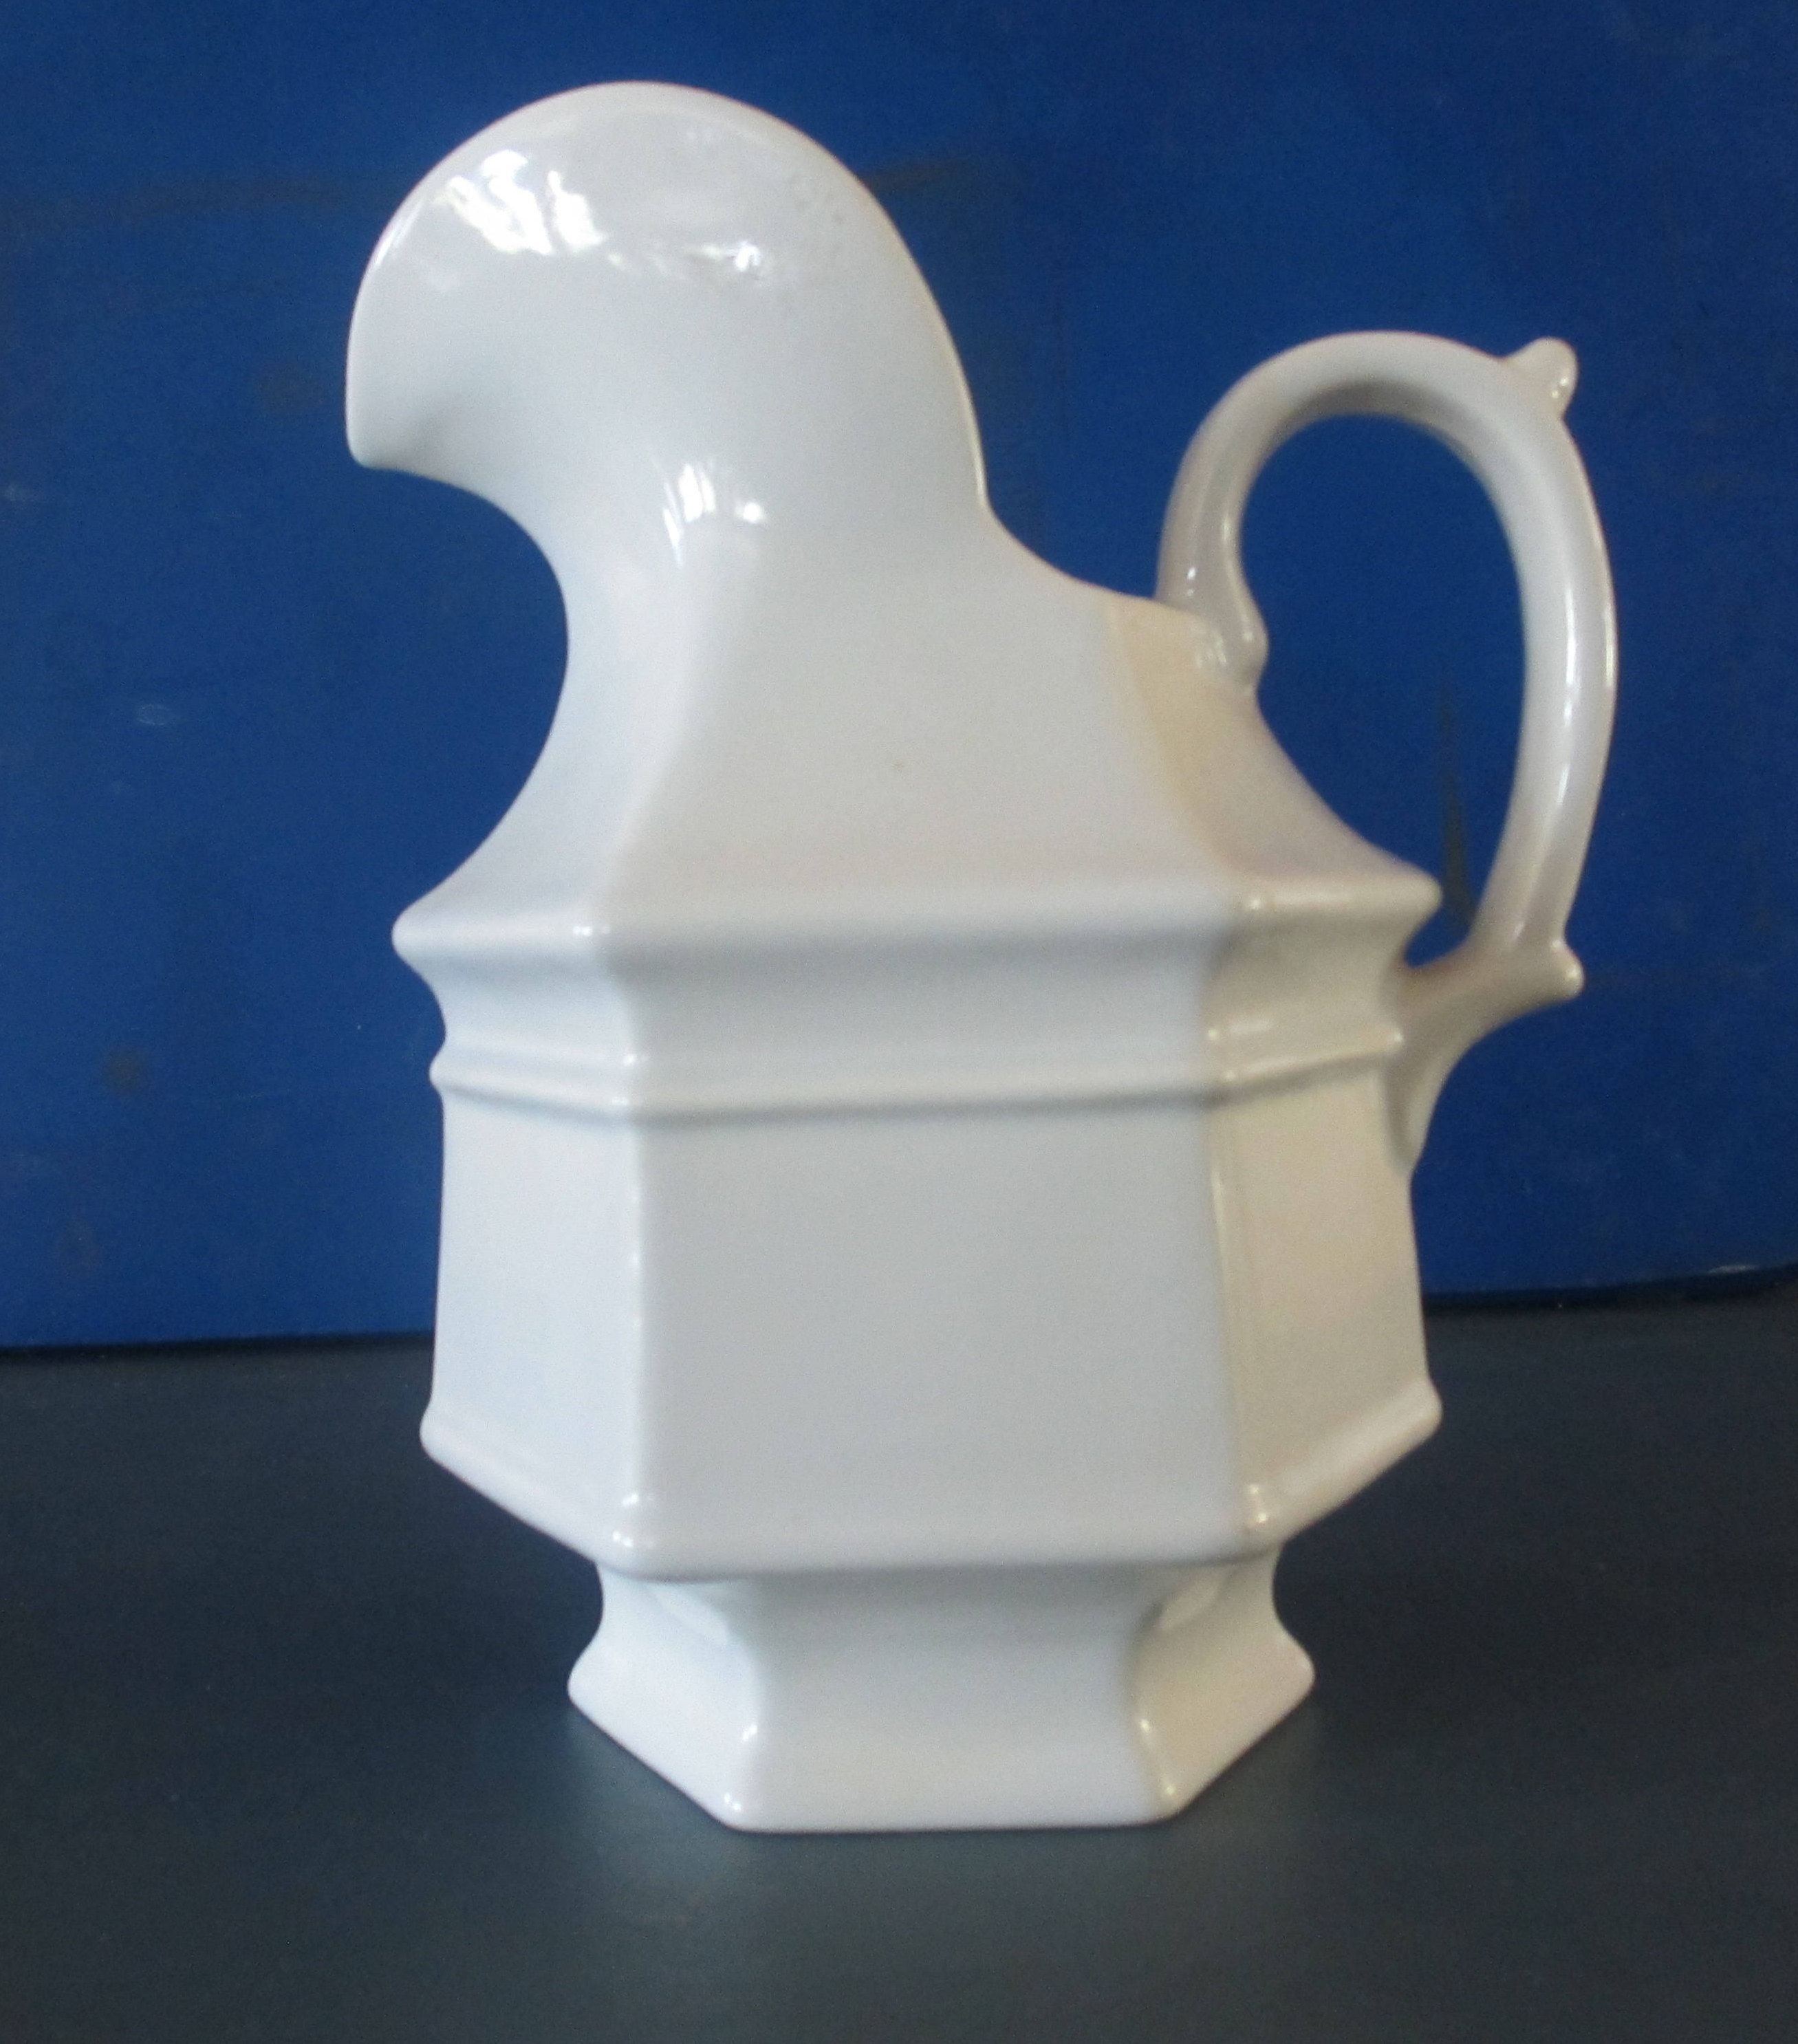 White Pitcher Haeger Usa 8063 Ceramic Large 9 Inches Tall Etsy White Pitcher Ceramics Pitcher